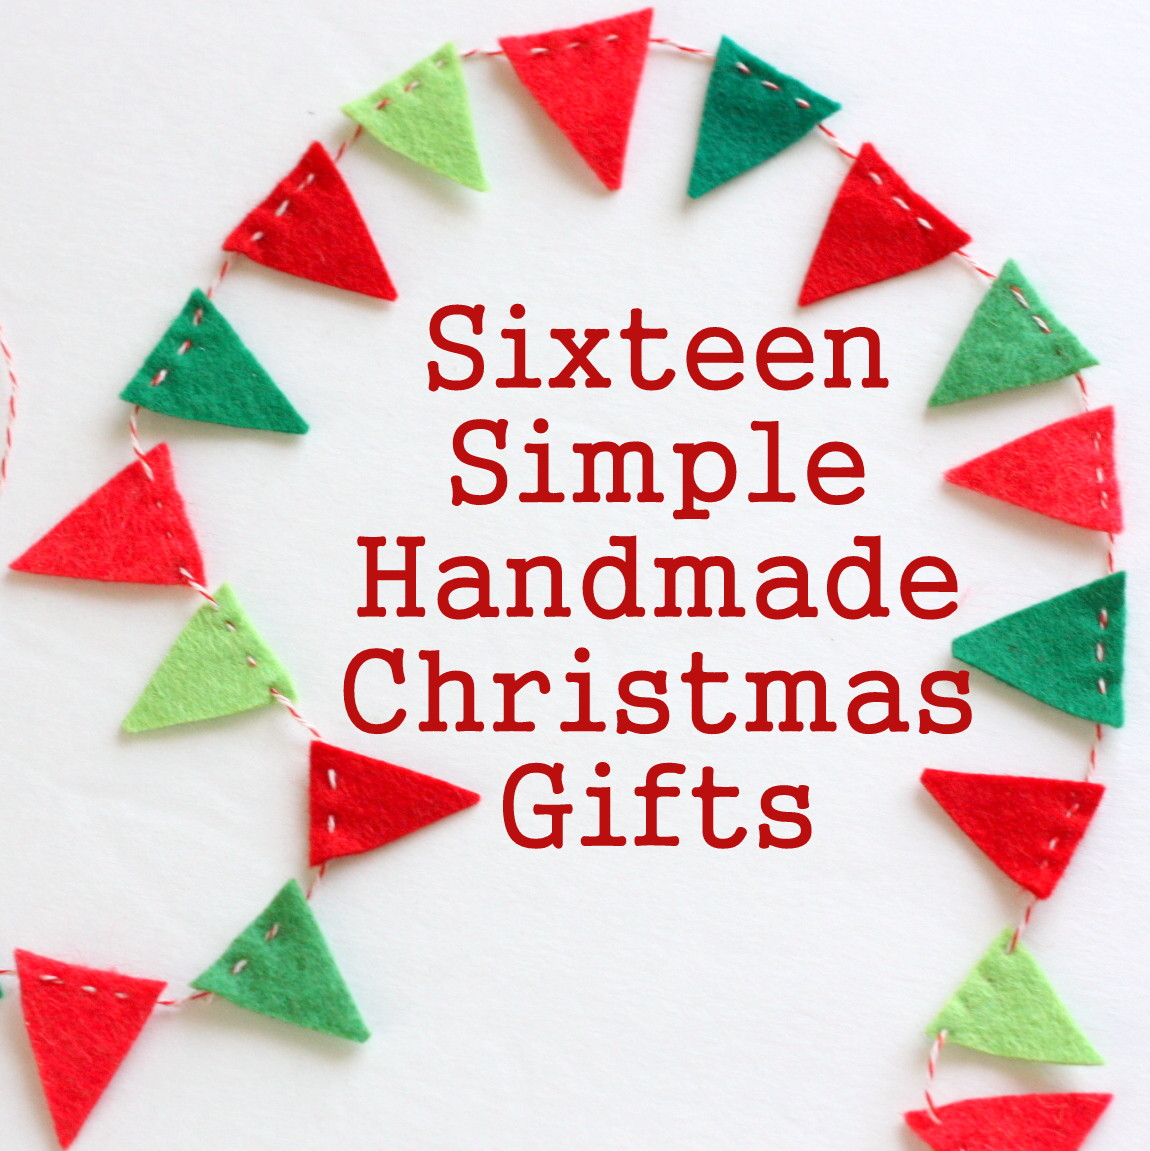 Craft Ideas For Christmas Gifts  16 Simple Handmade Christmas Gift tutorials